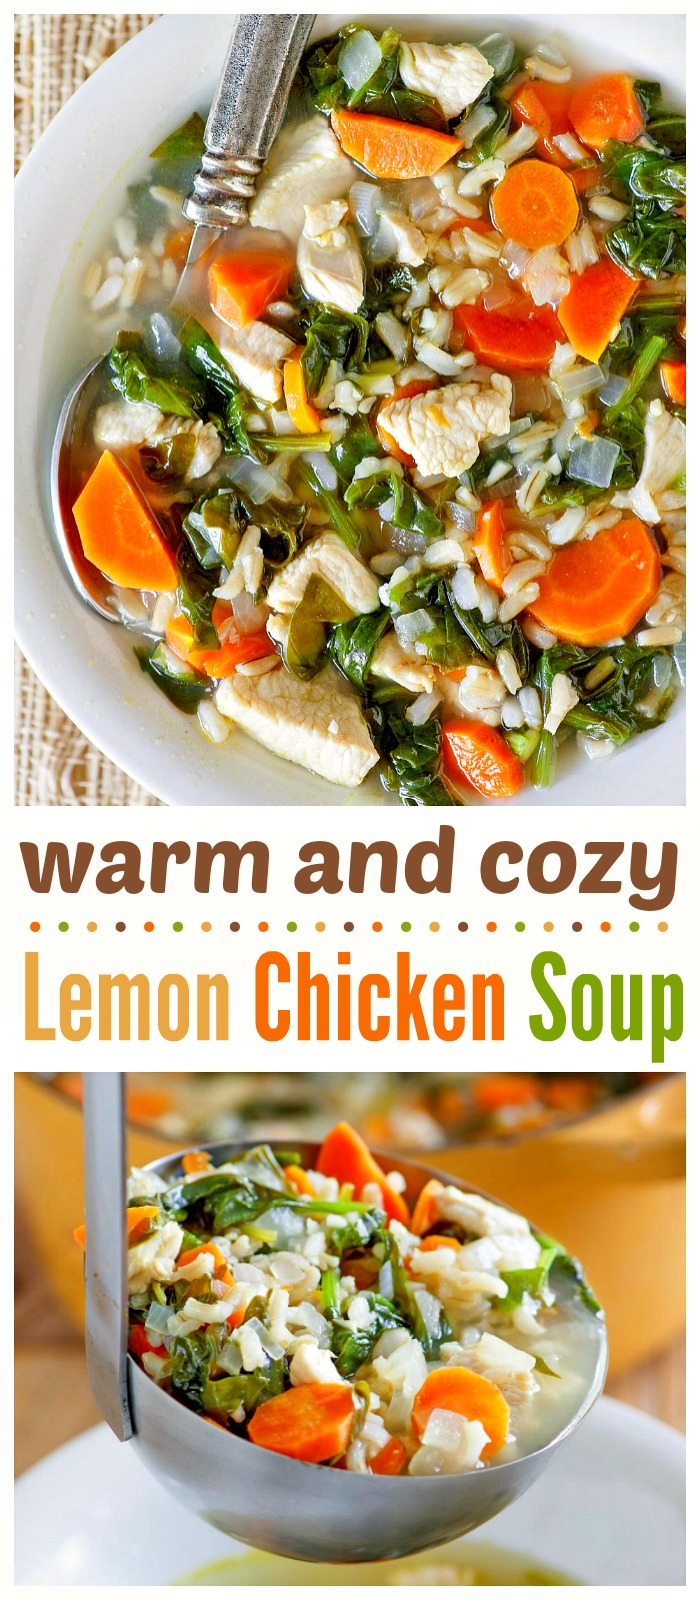 This Lemon Chicken Soup with rice and spinach is light, easy, healthy, and comforting. It will be your go-to dinner recipe on cold days! #lemon #chicken #soup